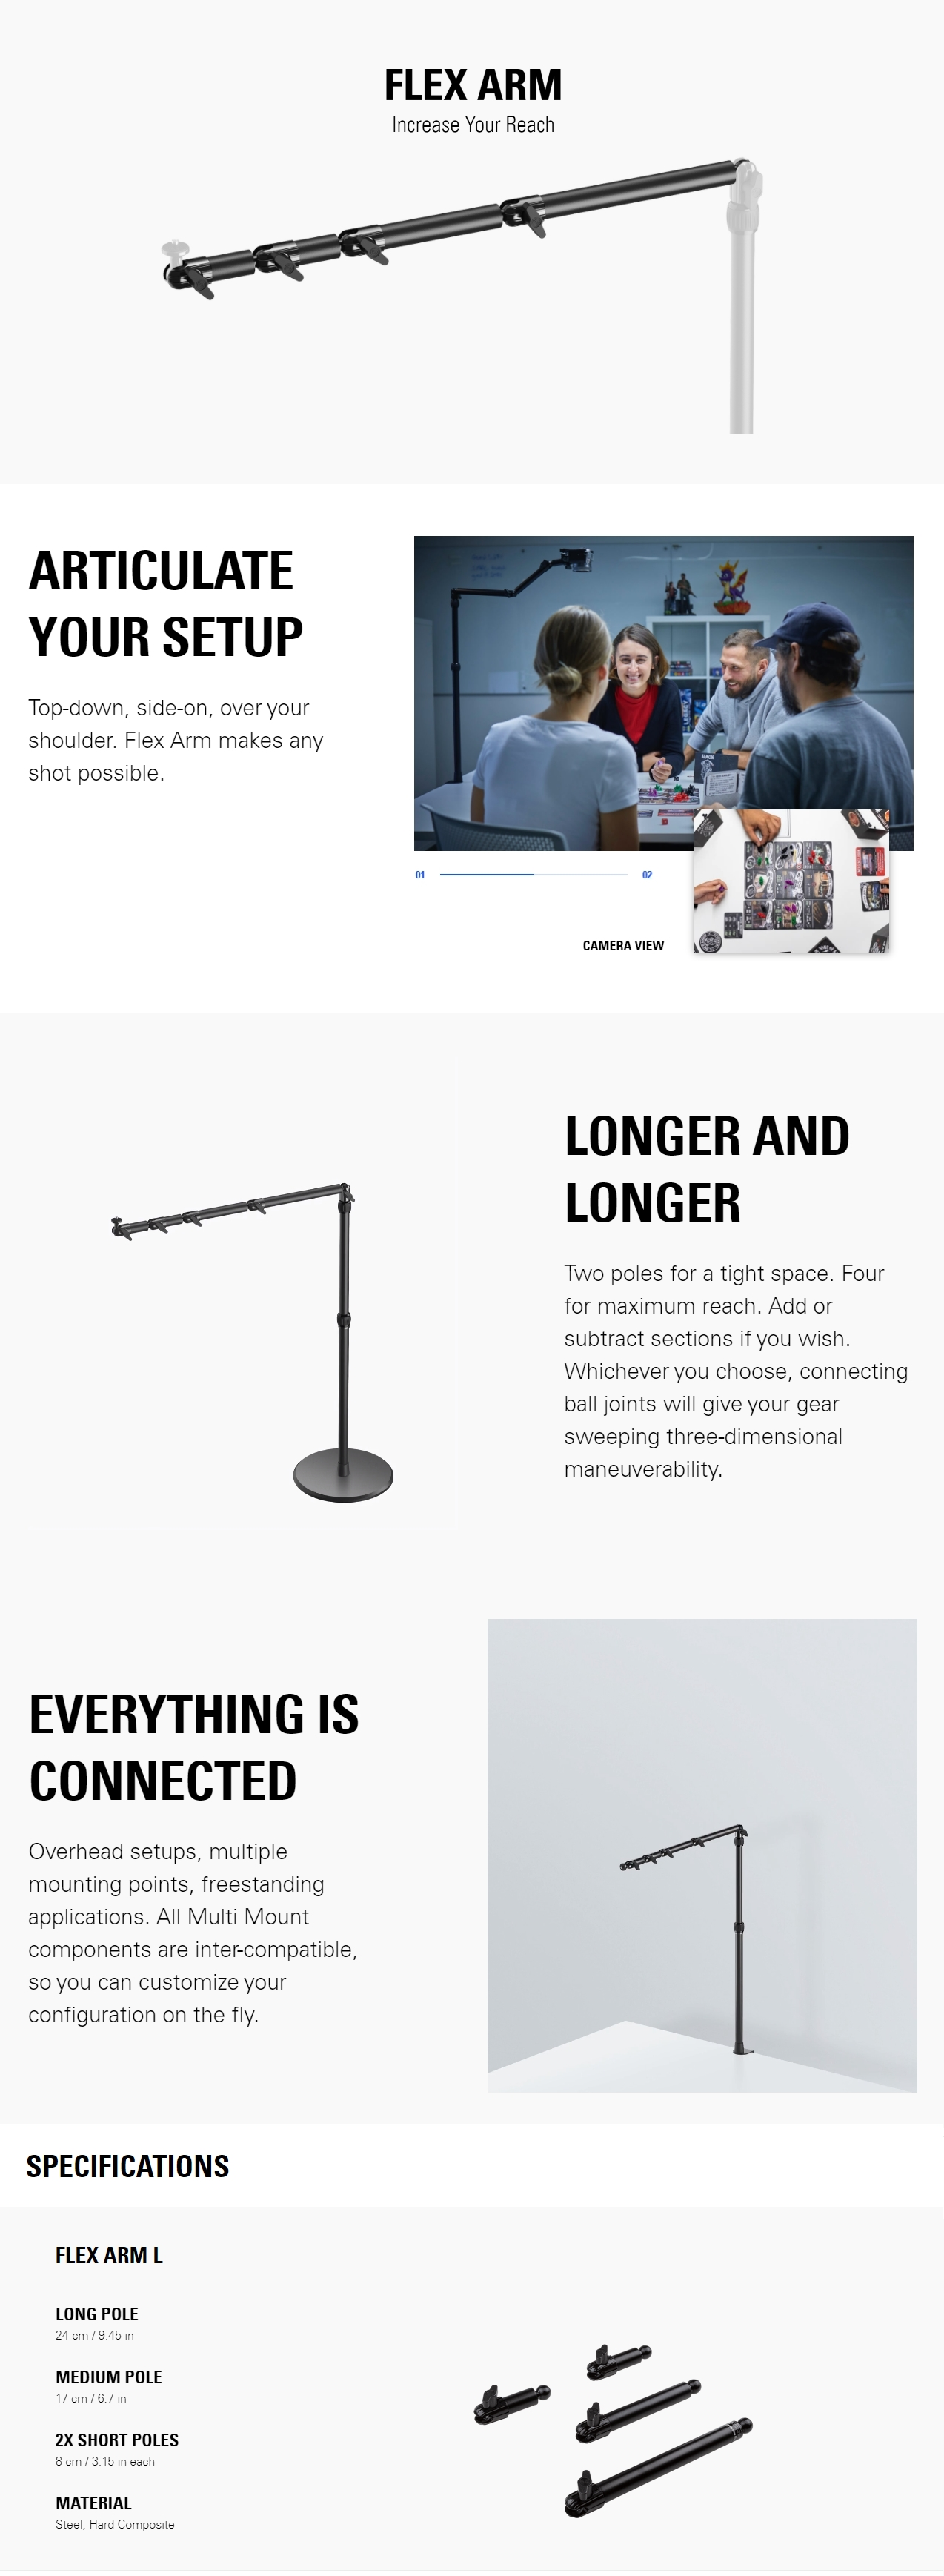 A large marketing image providing additional information about the product Elgato Multi Mount System - Flex Arm Large - Additional alt info not provided